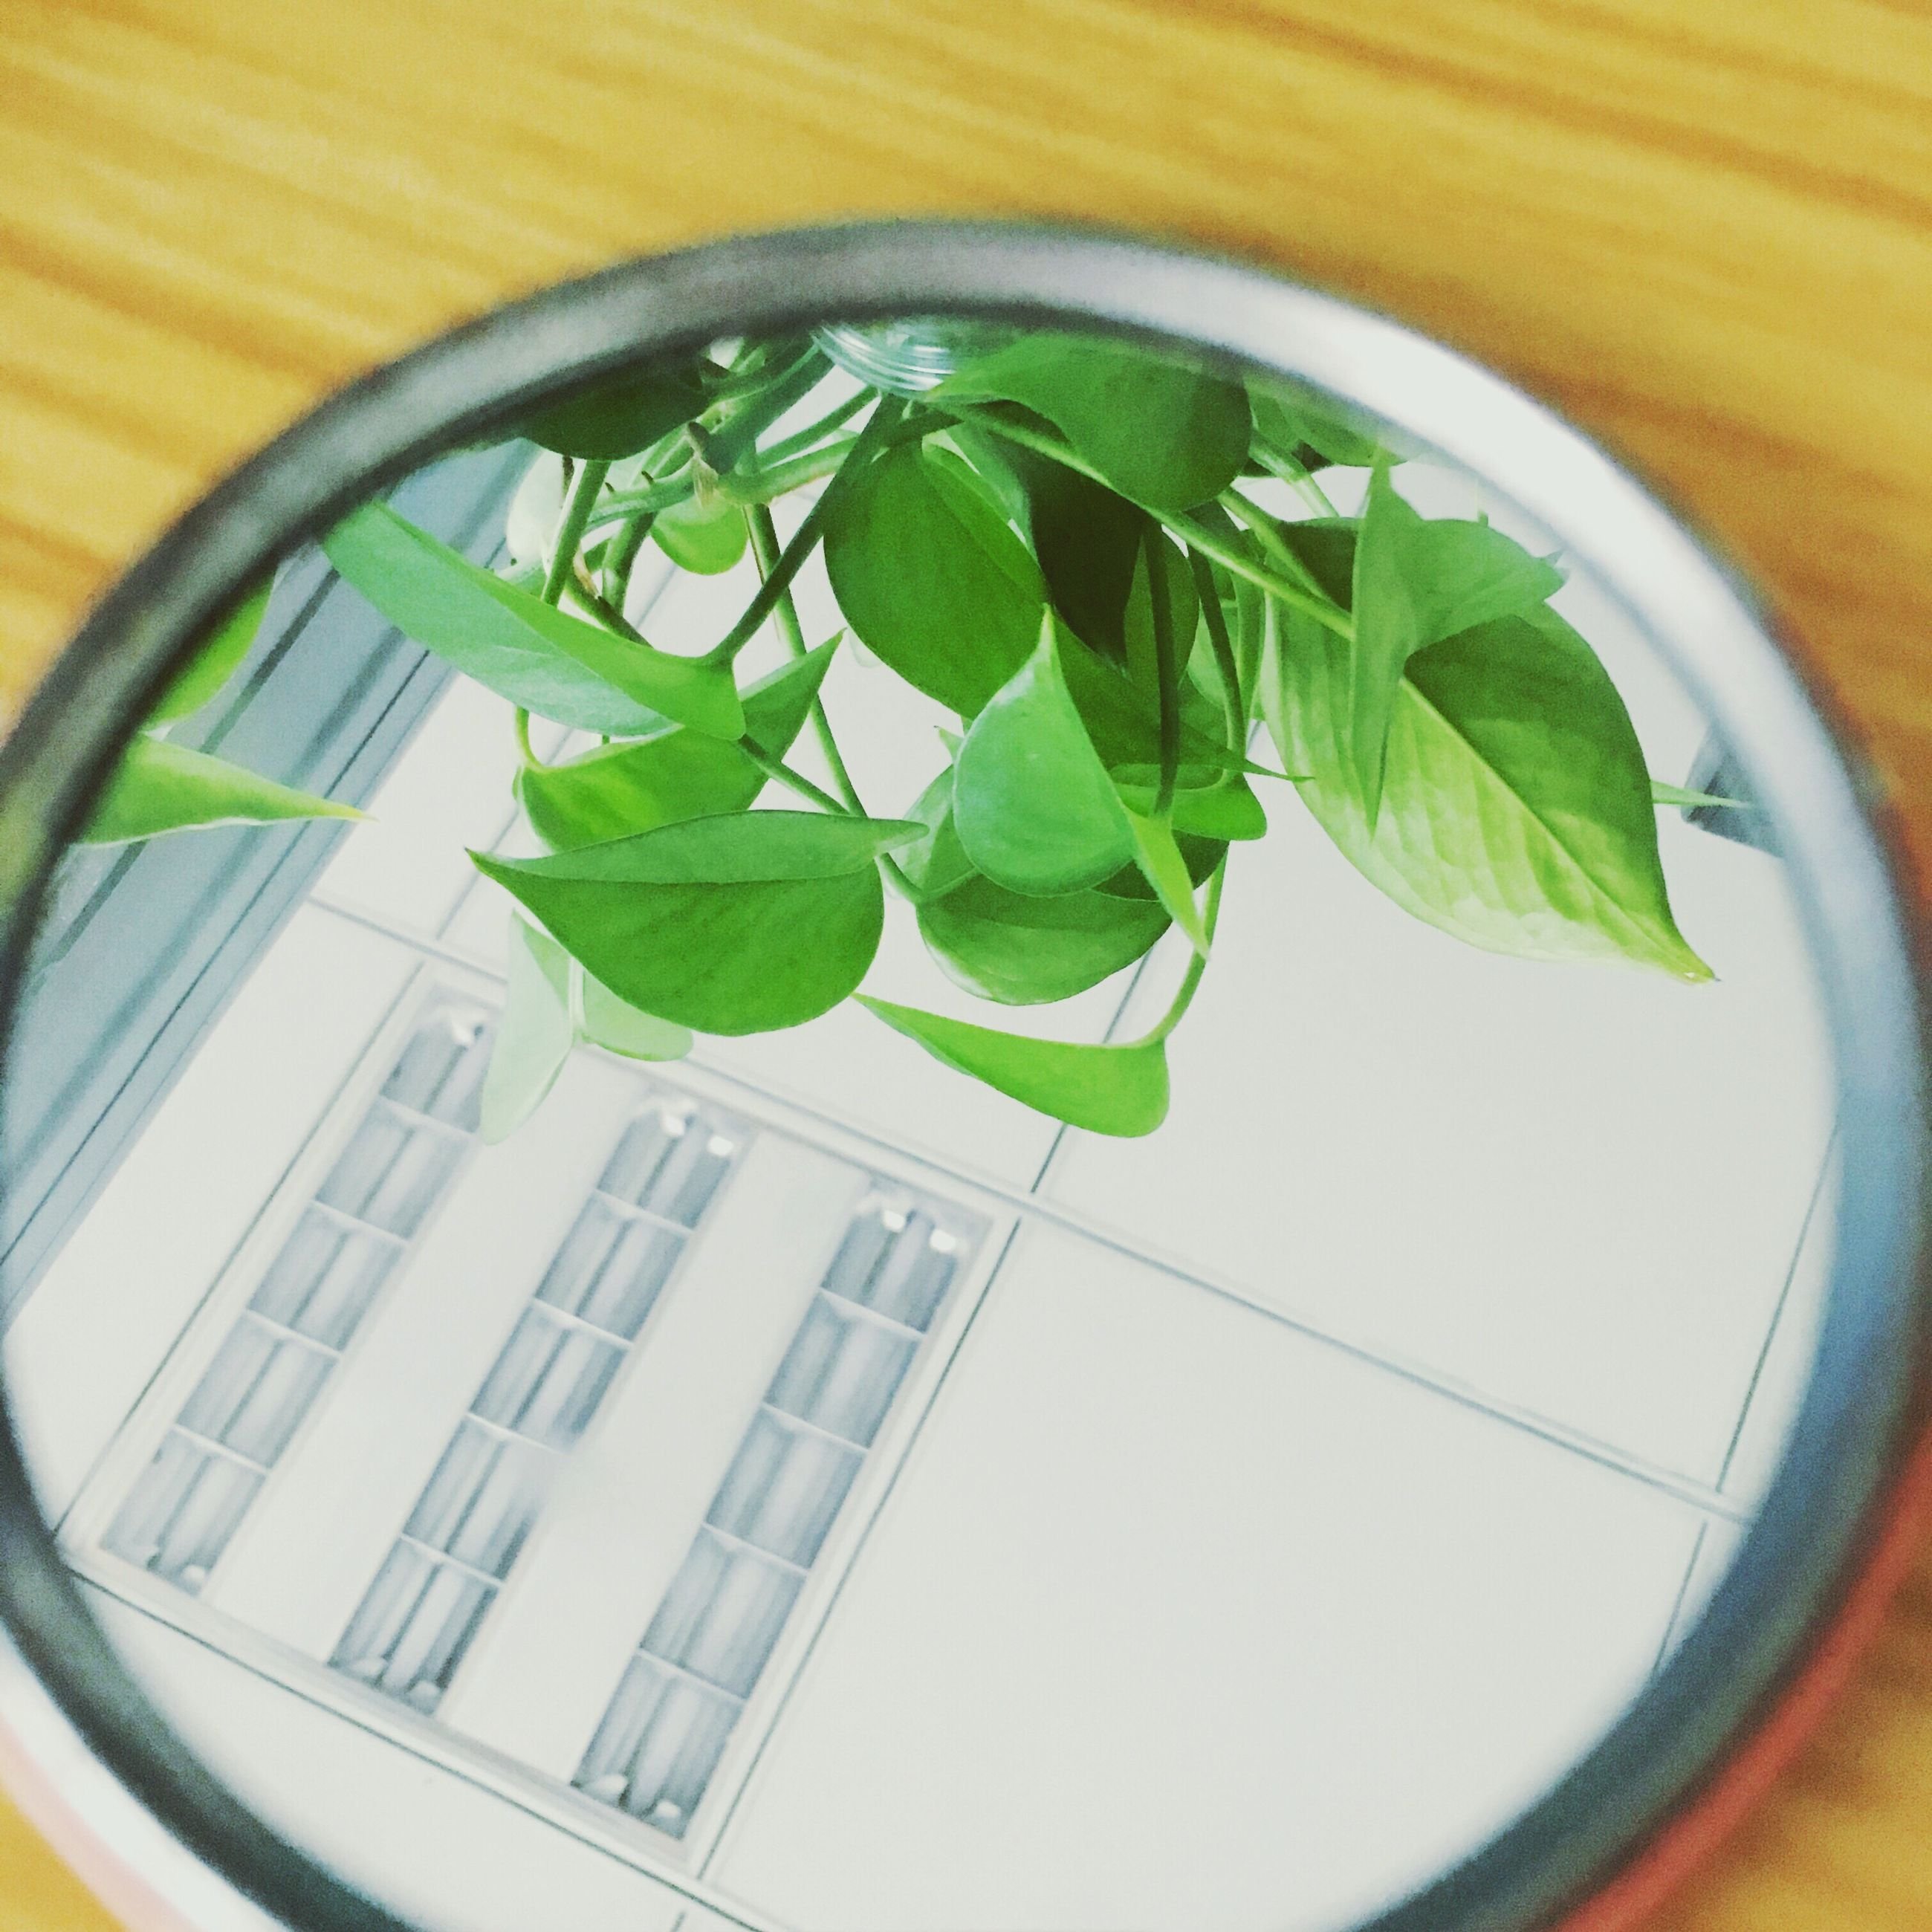 leaf, close-up, window, growth, plant, green color, freshness, day, circle, no people